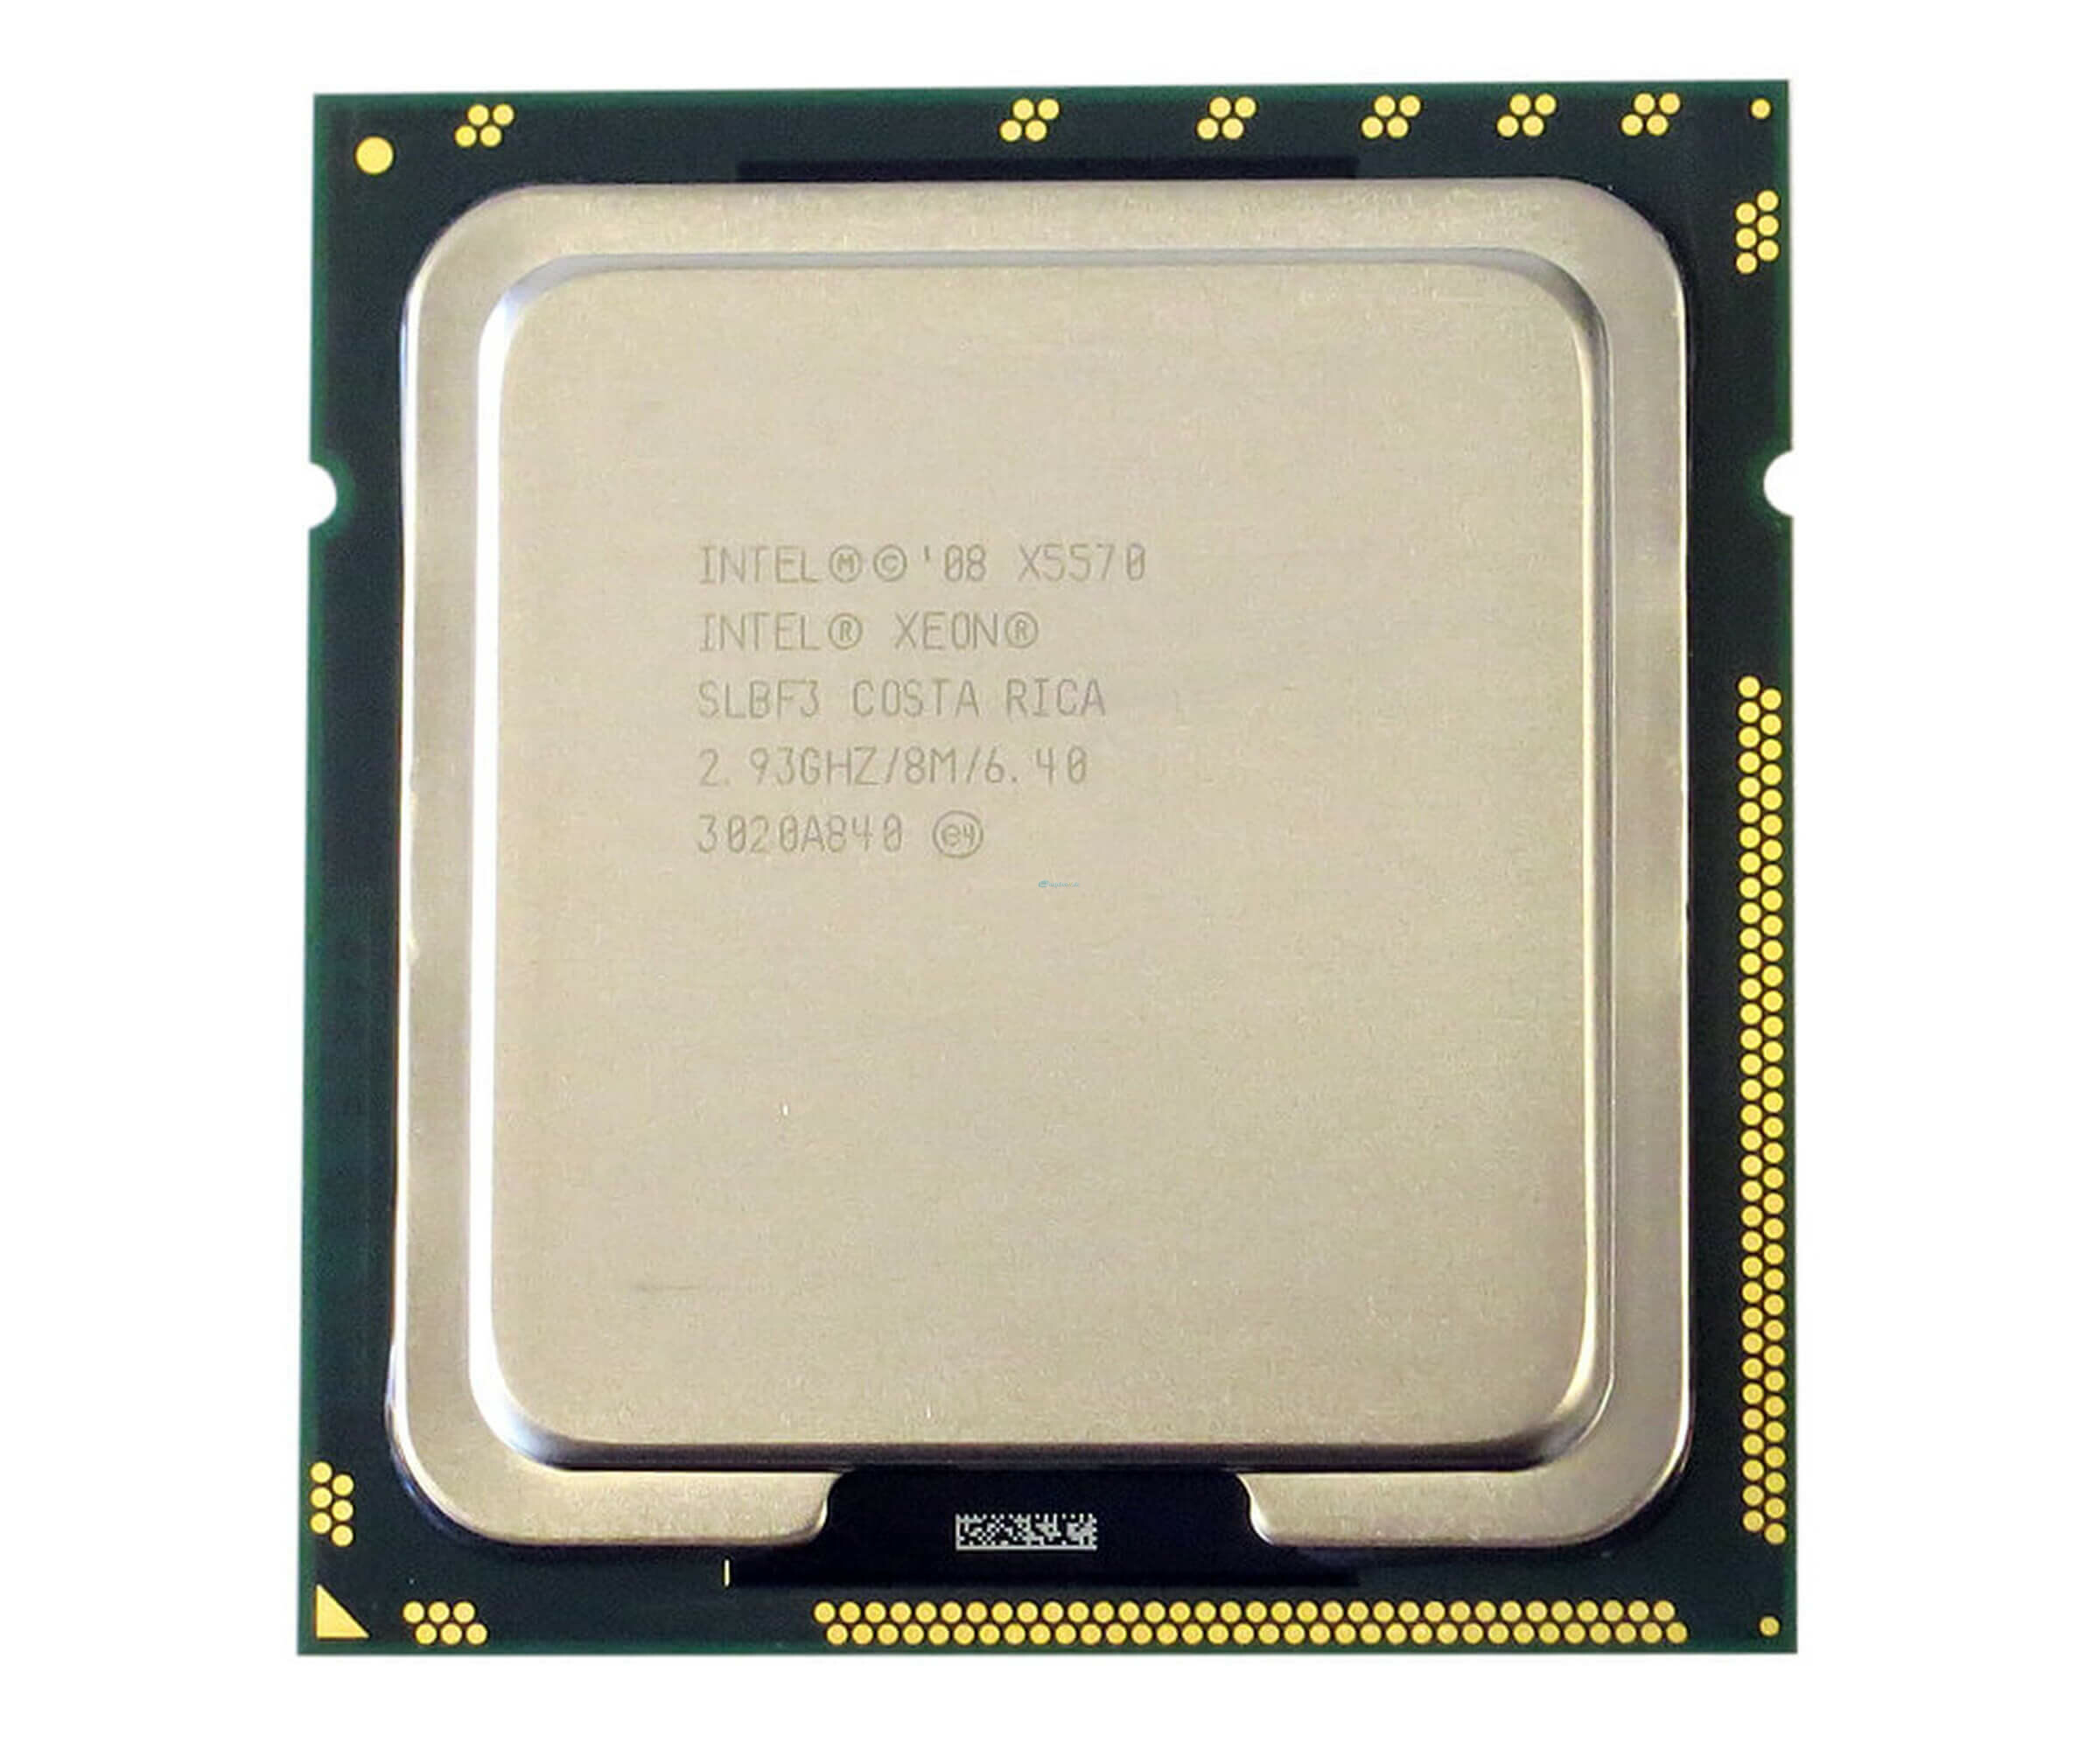 HP 507791-B21 - Intel Xeon X5570 - 2.93 GHz Prozessor - Socket FCLGA1366 - 8 MB - 4-Core - KIT